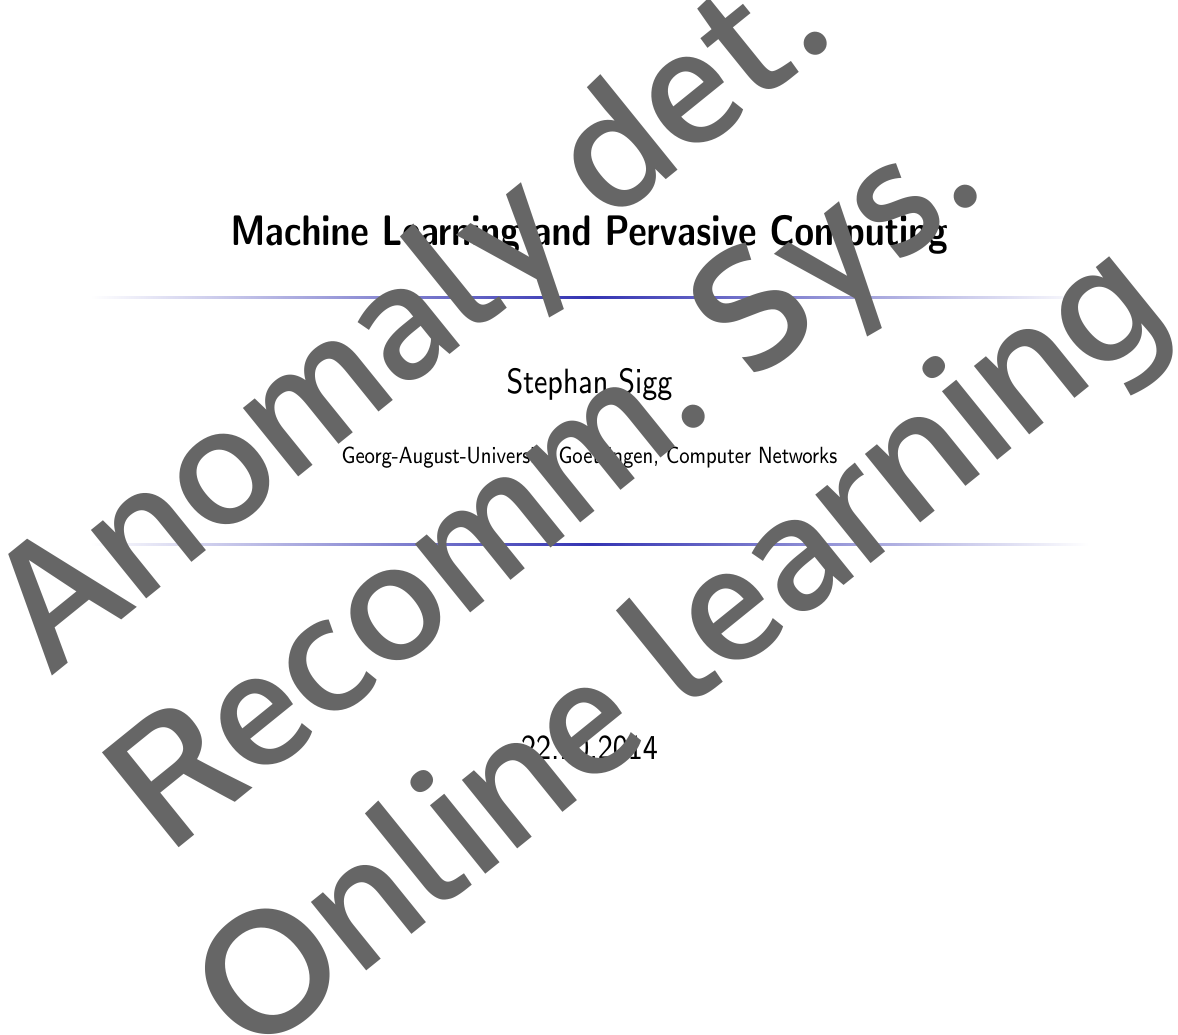 Anomaly detection, online learning, Recommender systems